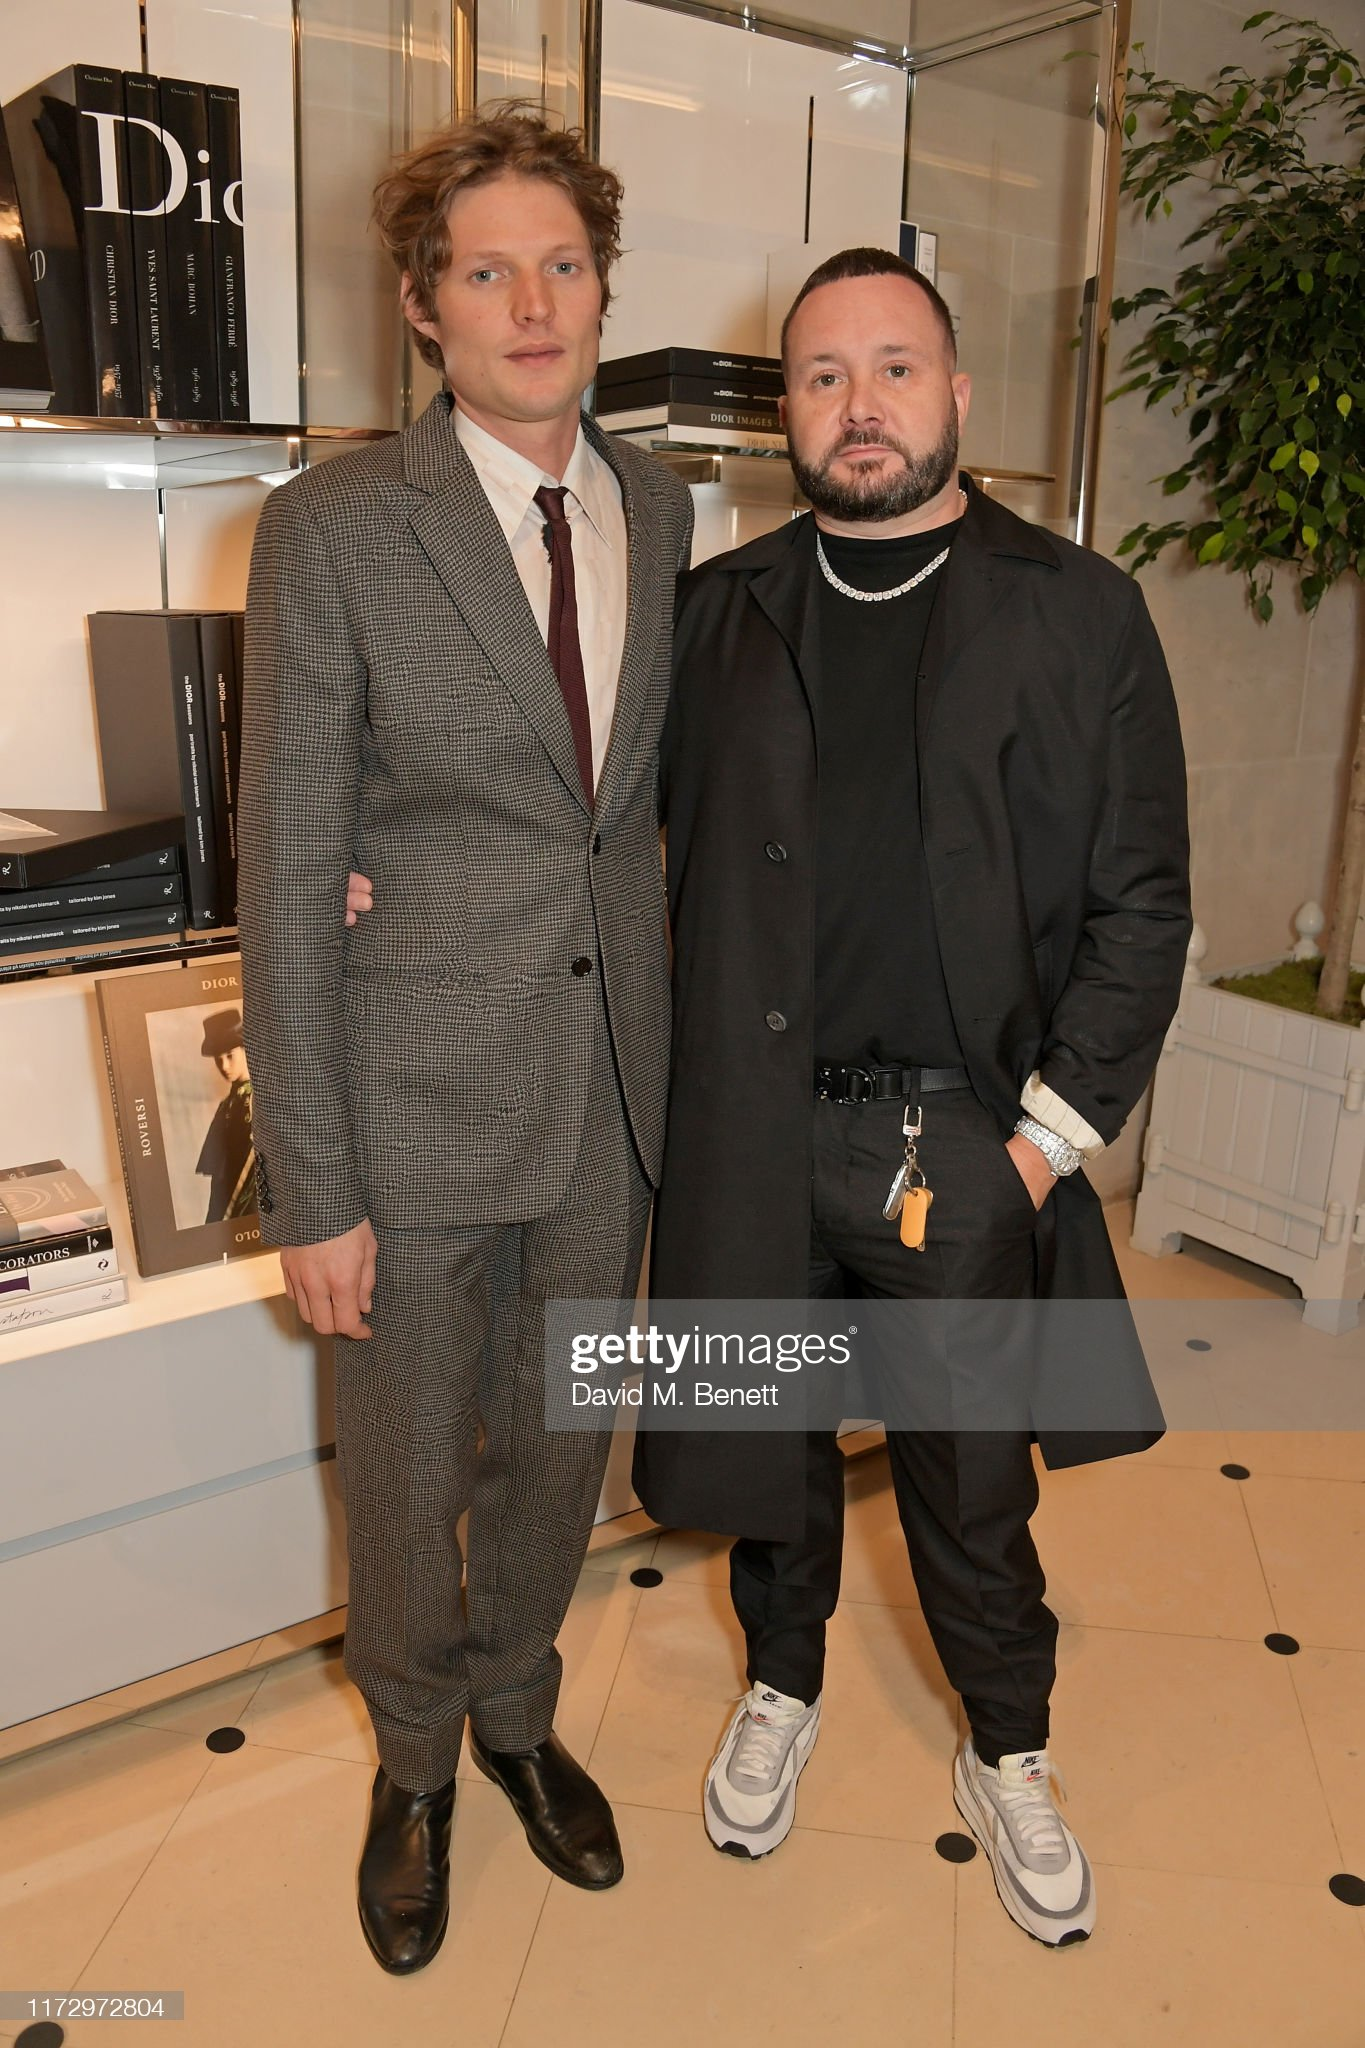 https://media.gettyimages.com/photos/nikolai-von-bismarck-and-kim-jones-attend-the-dior-sessions-book-on-picture-id1172972804?s=2048x2048